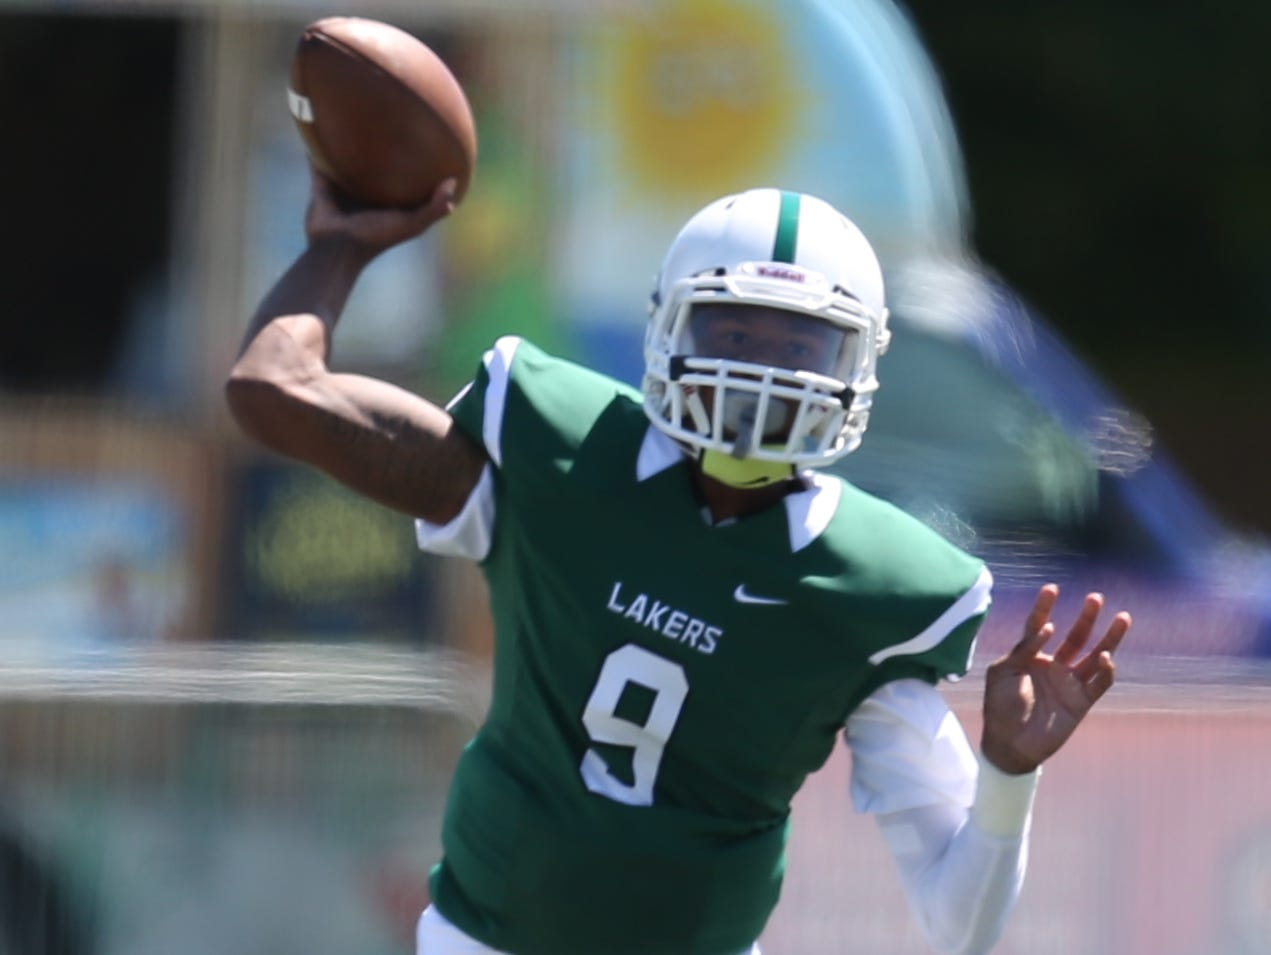 West Bloomfield high schools Trishton Jackson passes against Dearborn high school during first quarter action of the Prep Kickoff Classic on Thursday, August 28, 2014 at Tom Adams Field on the Wayne State campus in Detroit. Kirthmon F. Dozier/Detroit Free Press